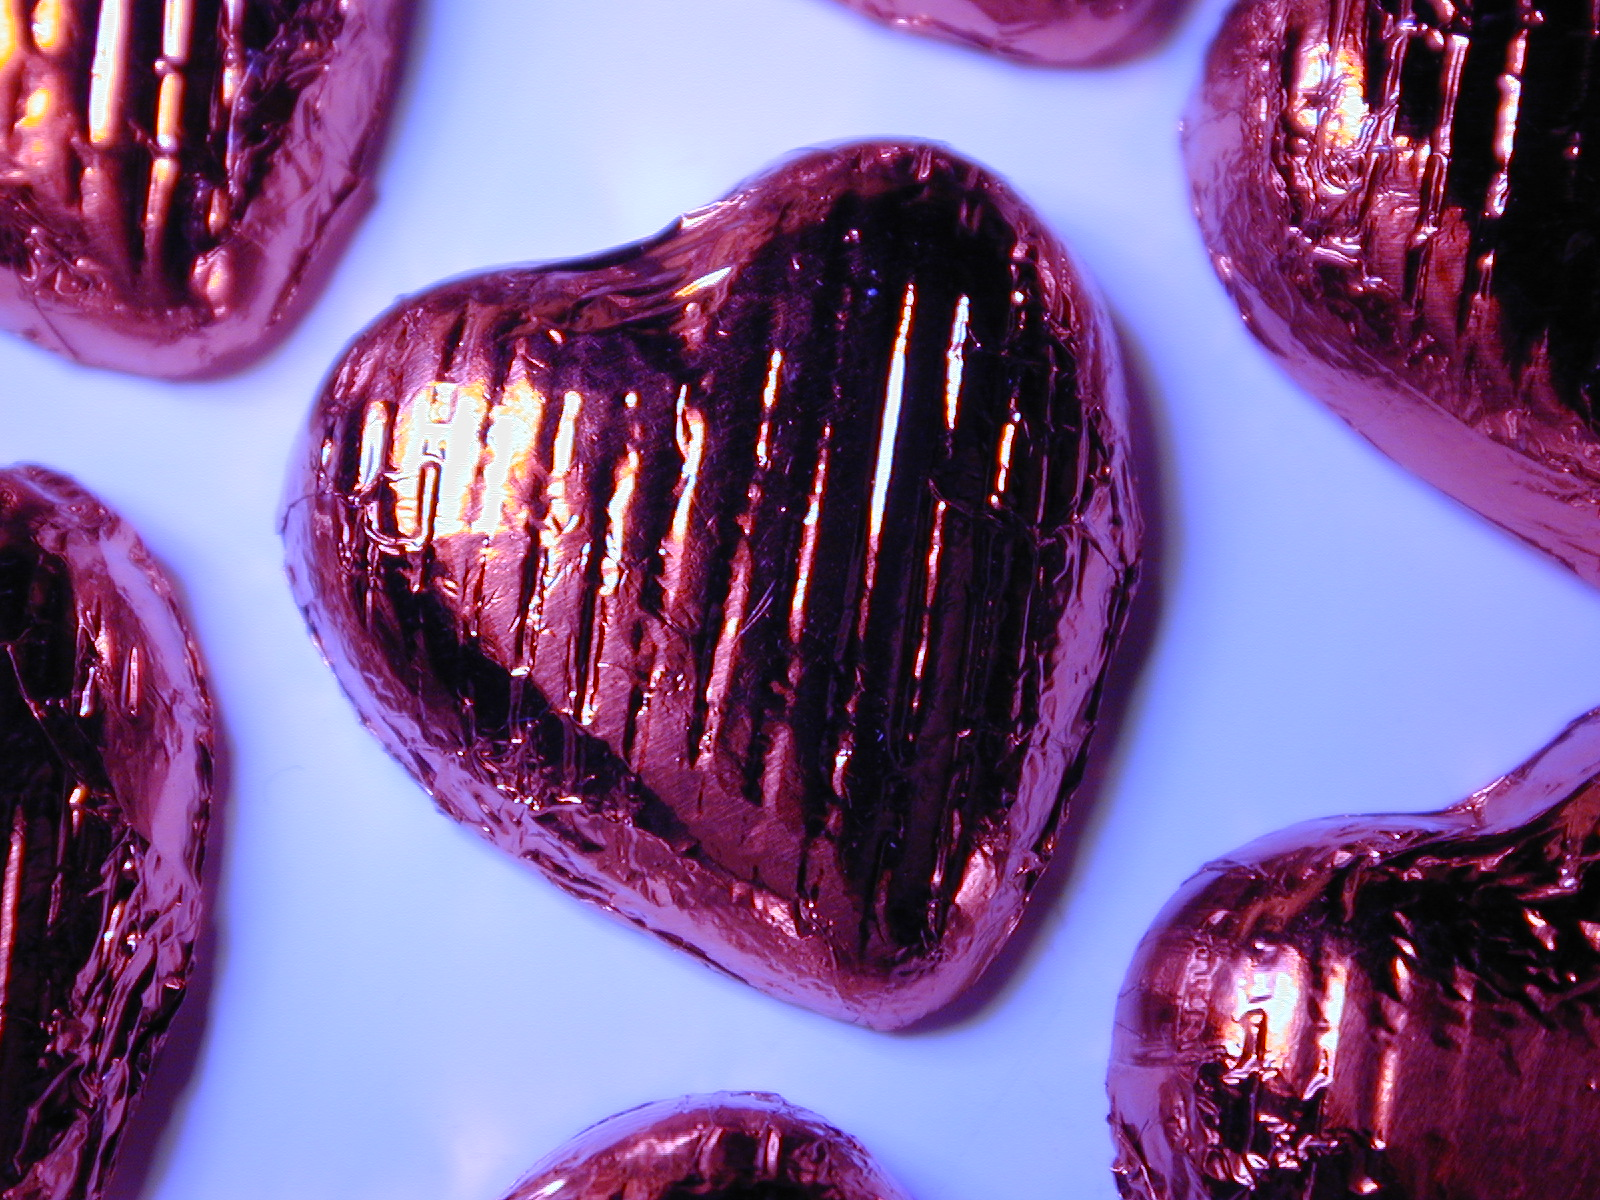 Chocolate Heart, Candy, Chocolate, Foil, Heart, HQ Photo